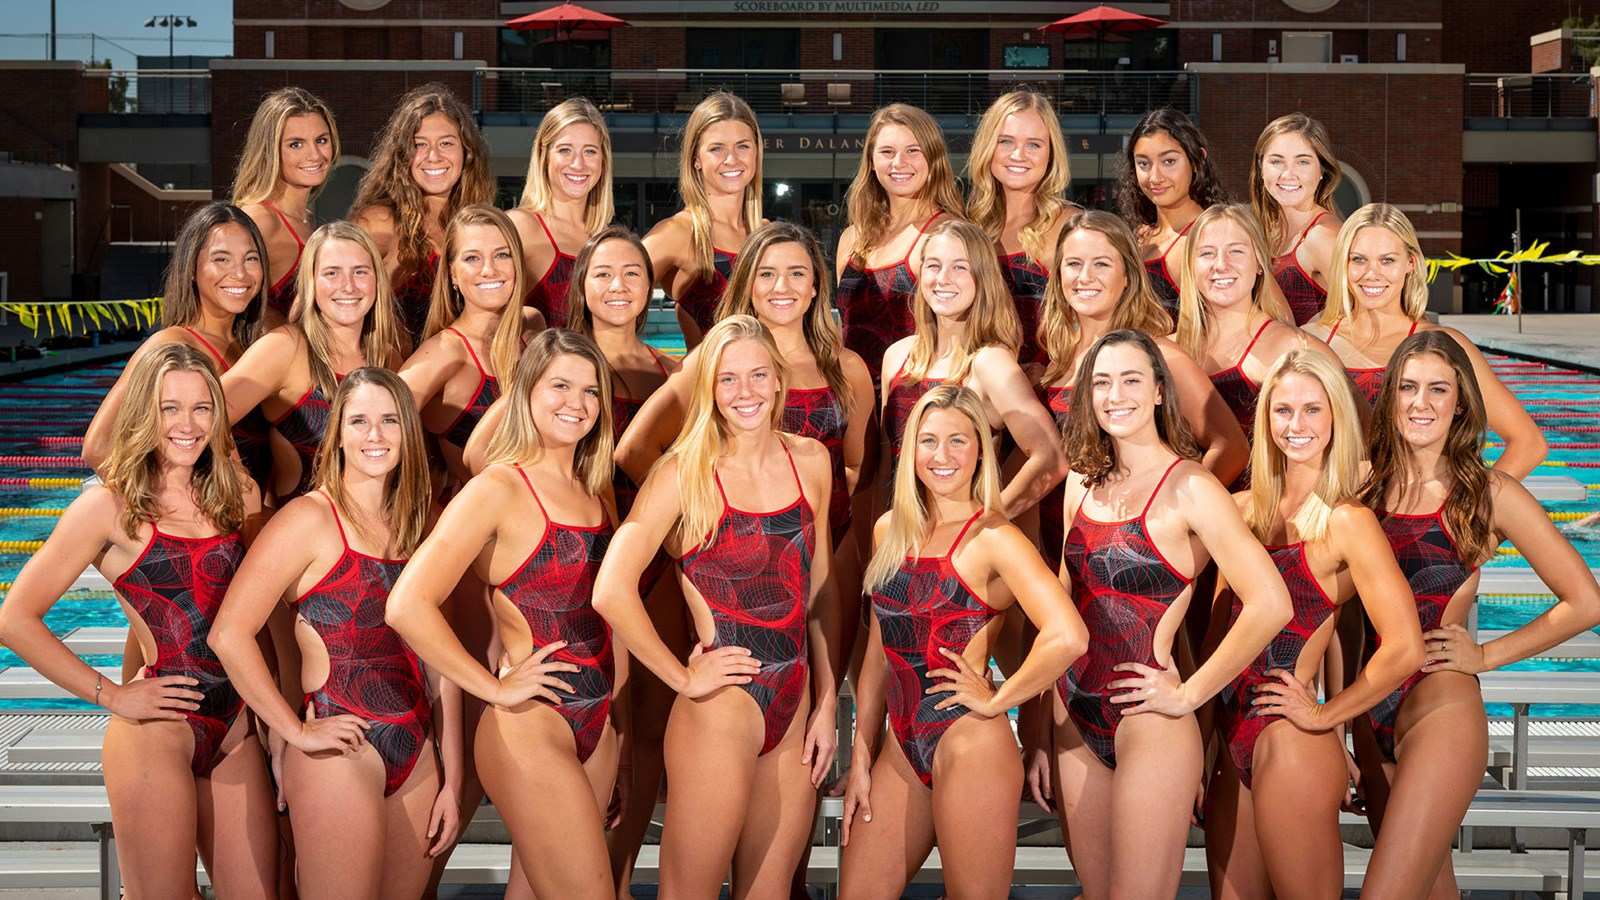 The team photo of the women's swimming and diving team